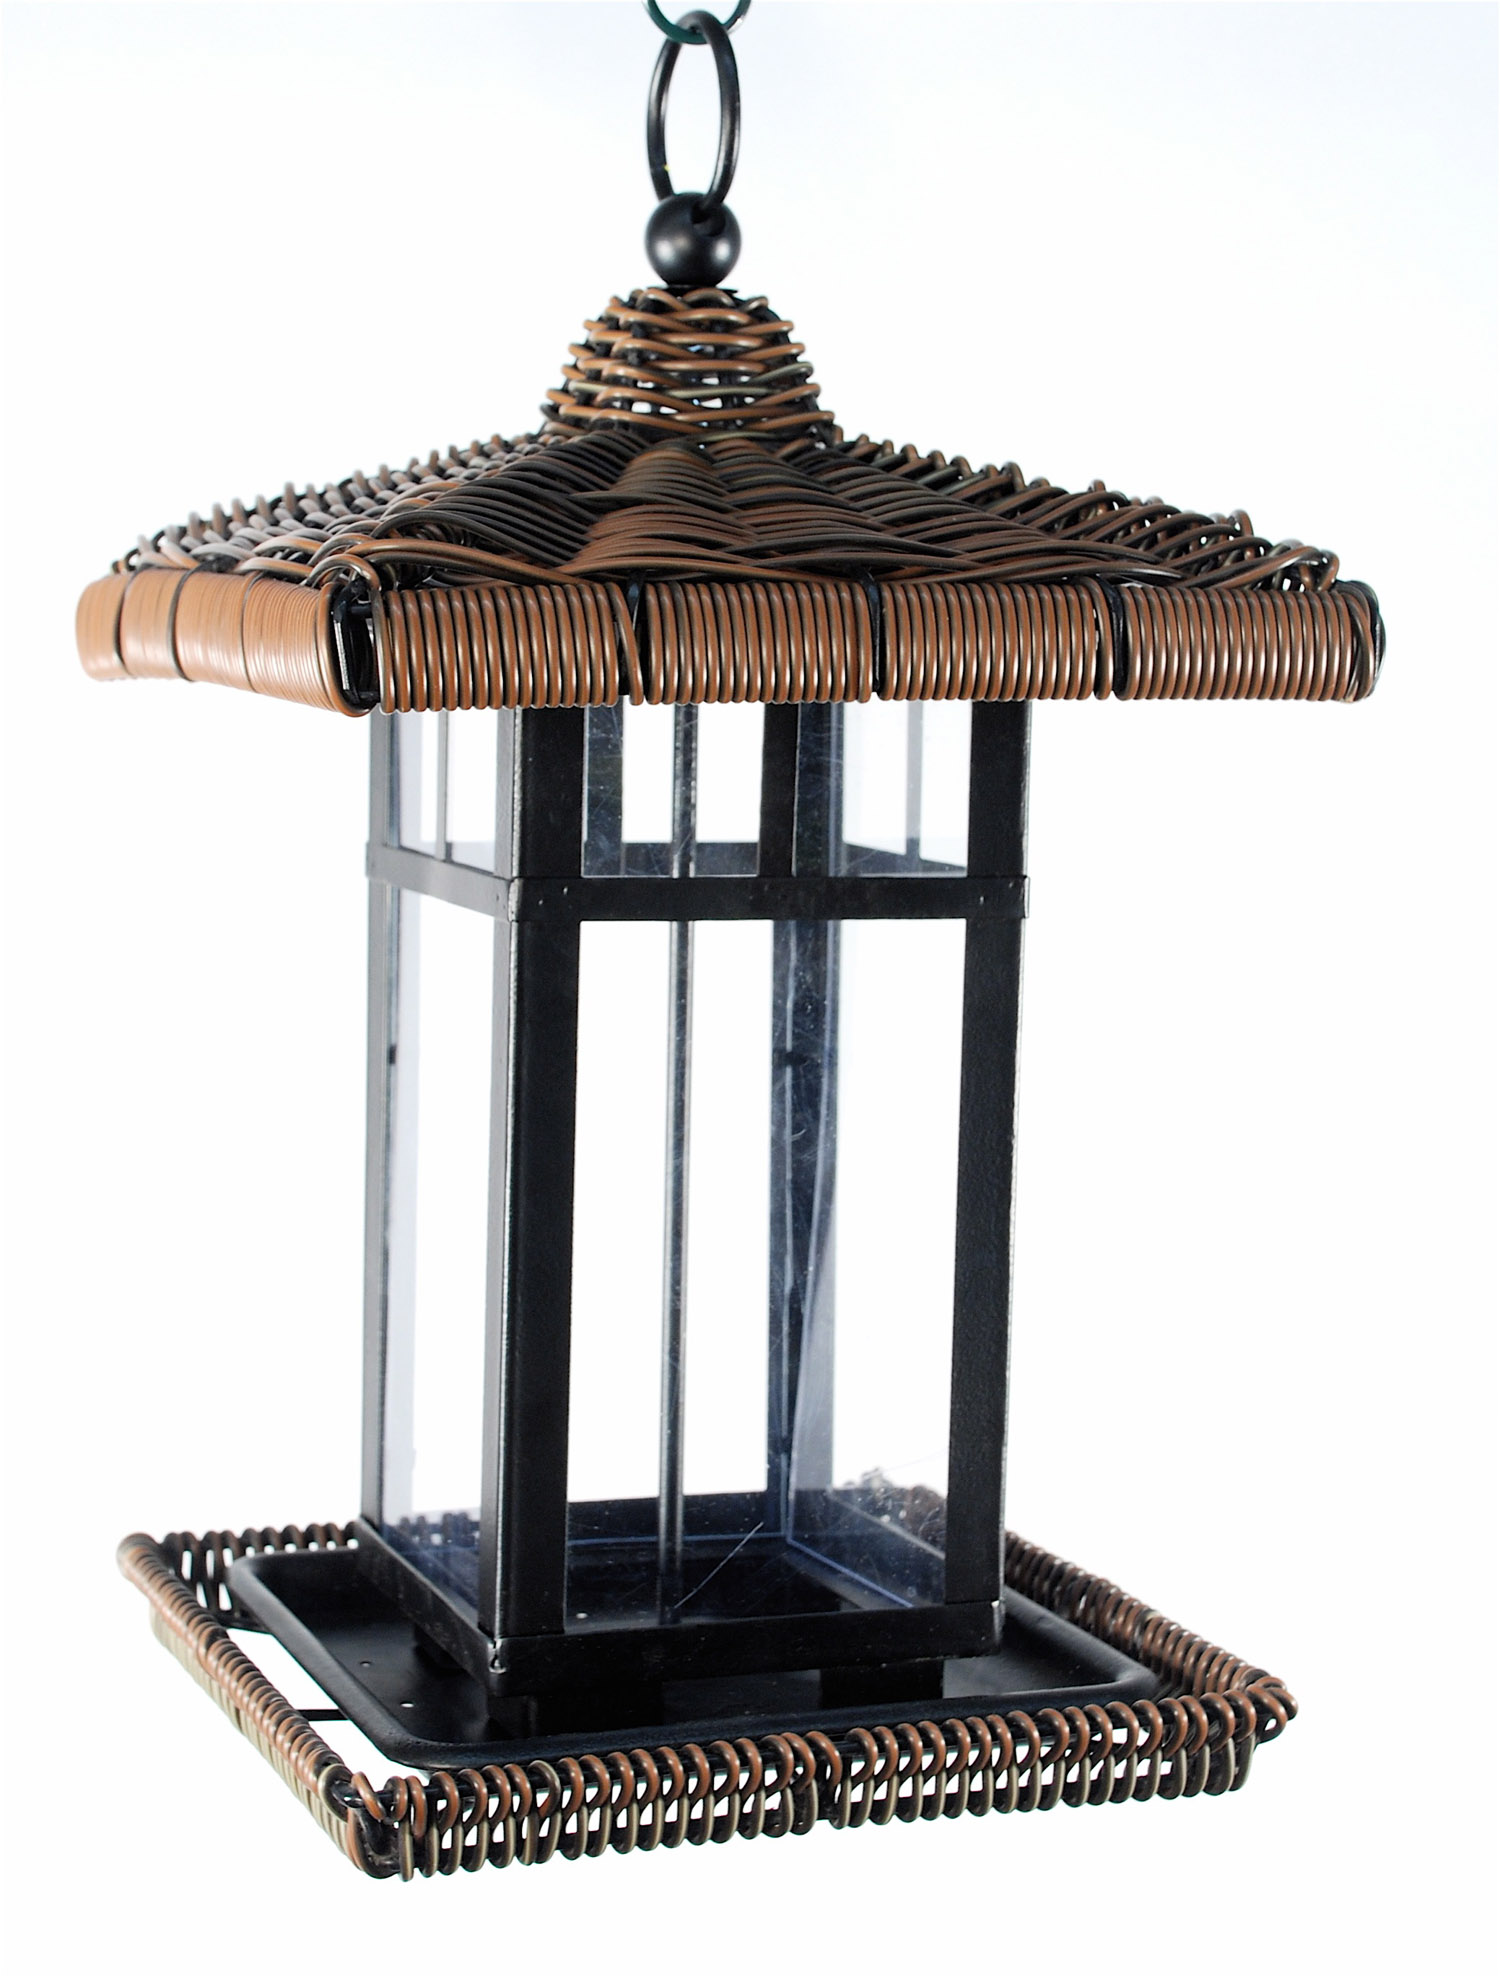 sweet gazebo feeder pdx reviews outdoor tray pavilion decorative wayfair bird thingz zingz